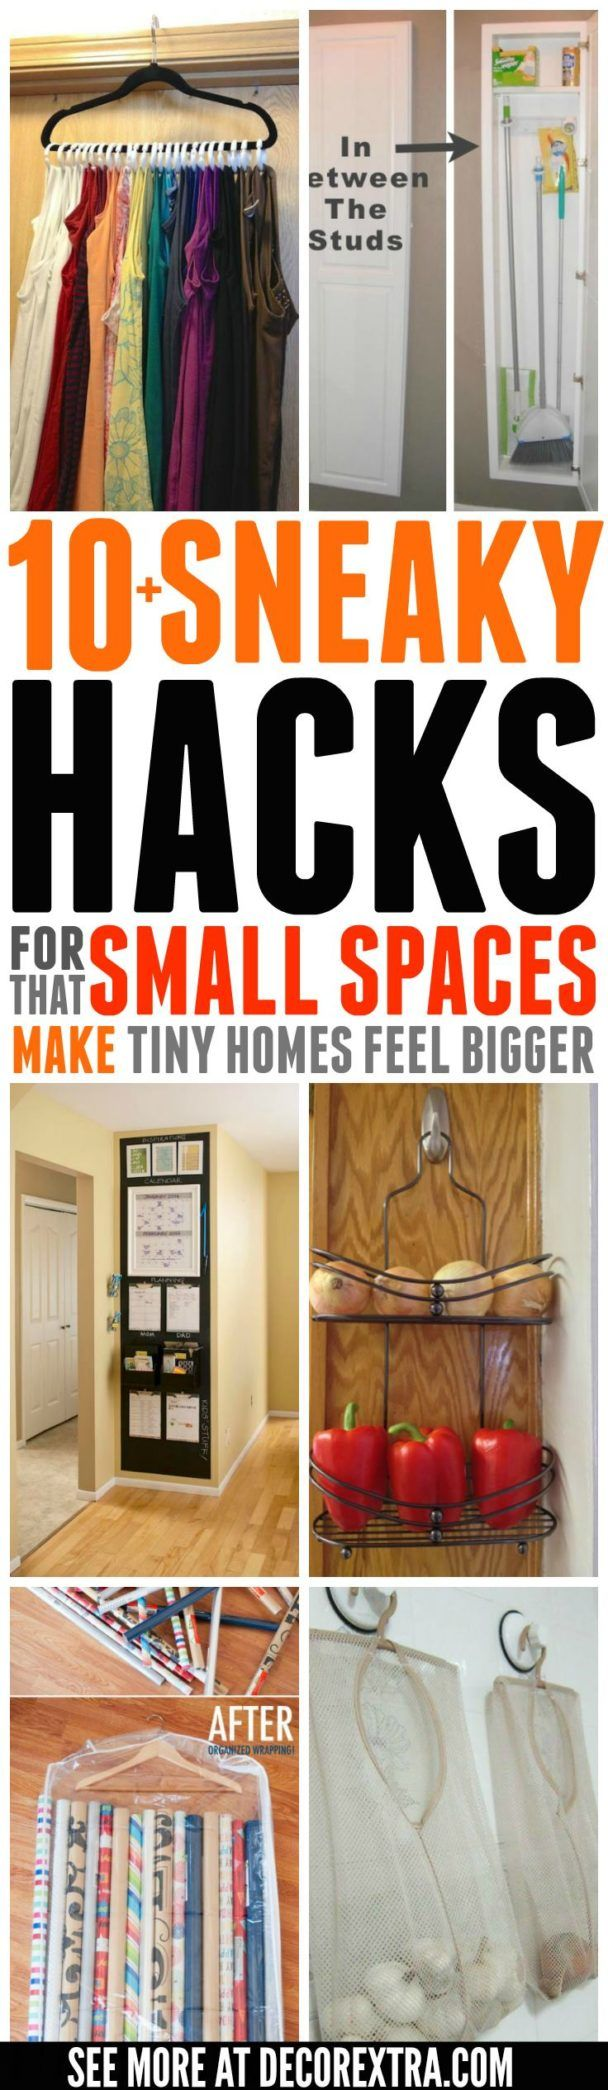 Small Space Hacks ! In this collection, you are going to see lots of storage and organization tips, including how to find extra storage space in your kitchen, bedroom and other rooms. There are lots of amazing Hacks For Small Space Living to make for tiny home Feel Bigger. Check out these WONDERFUL ideas, most of these …